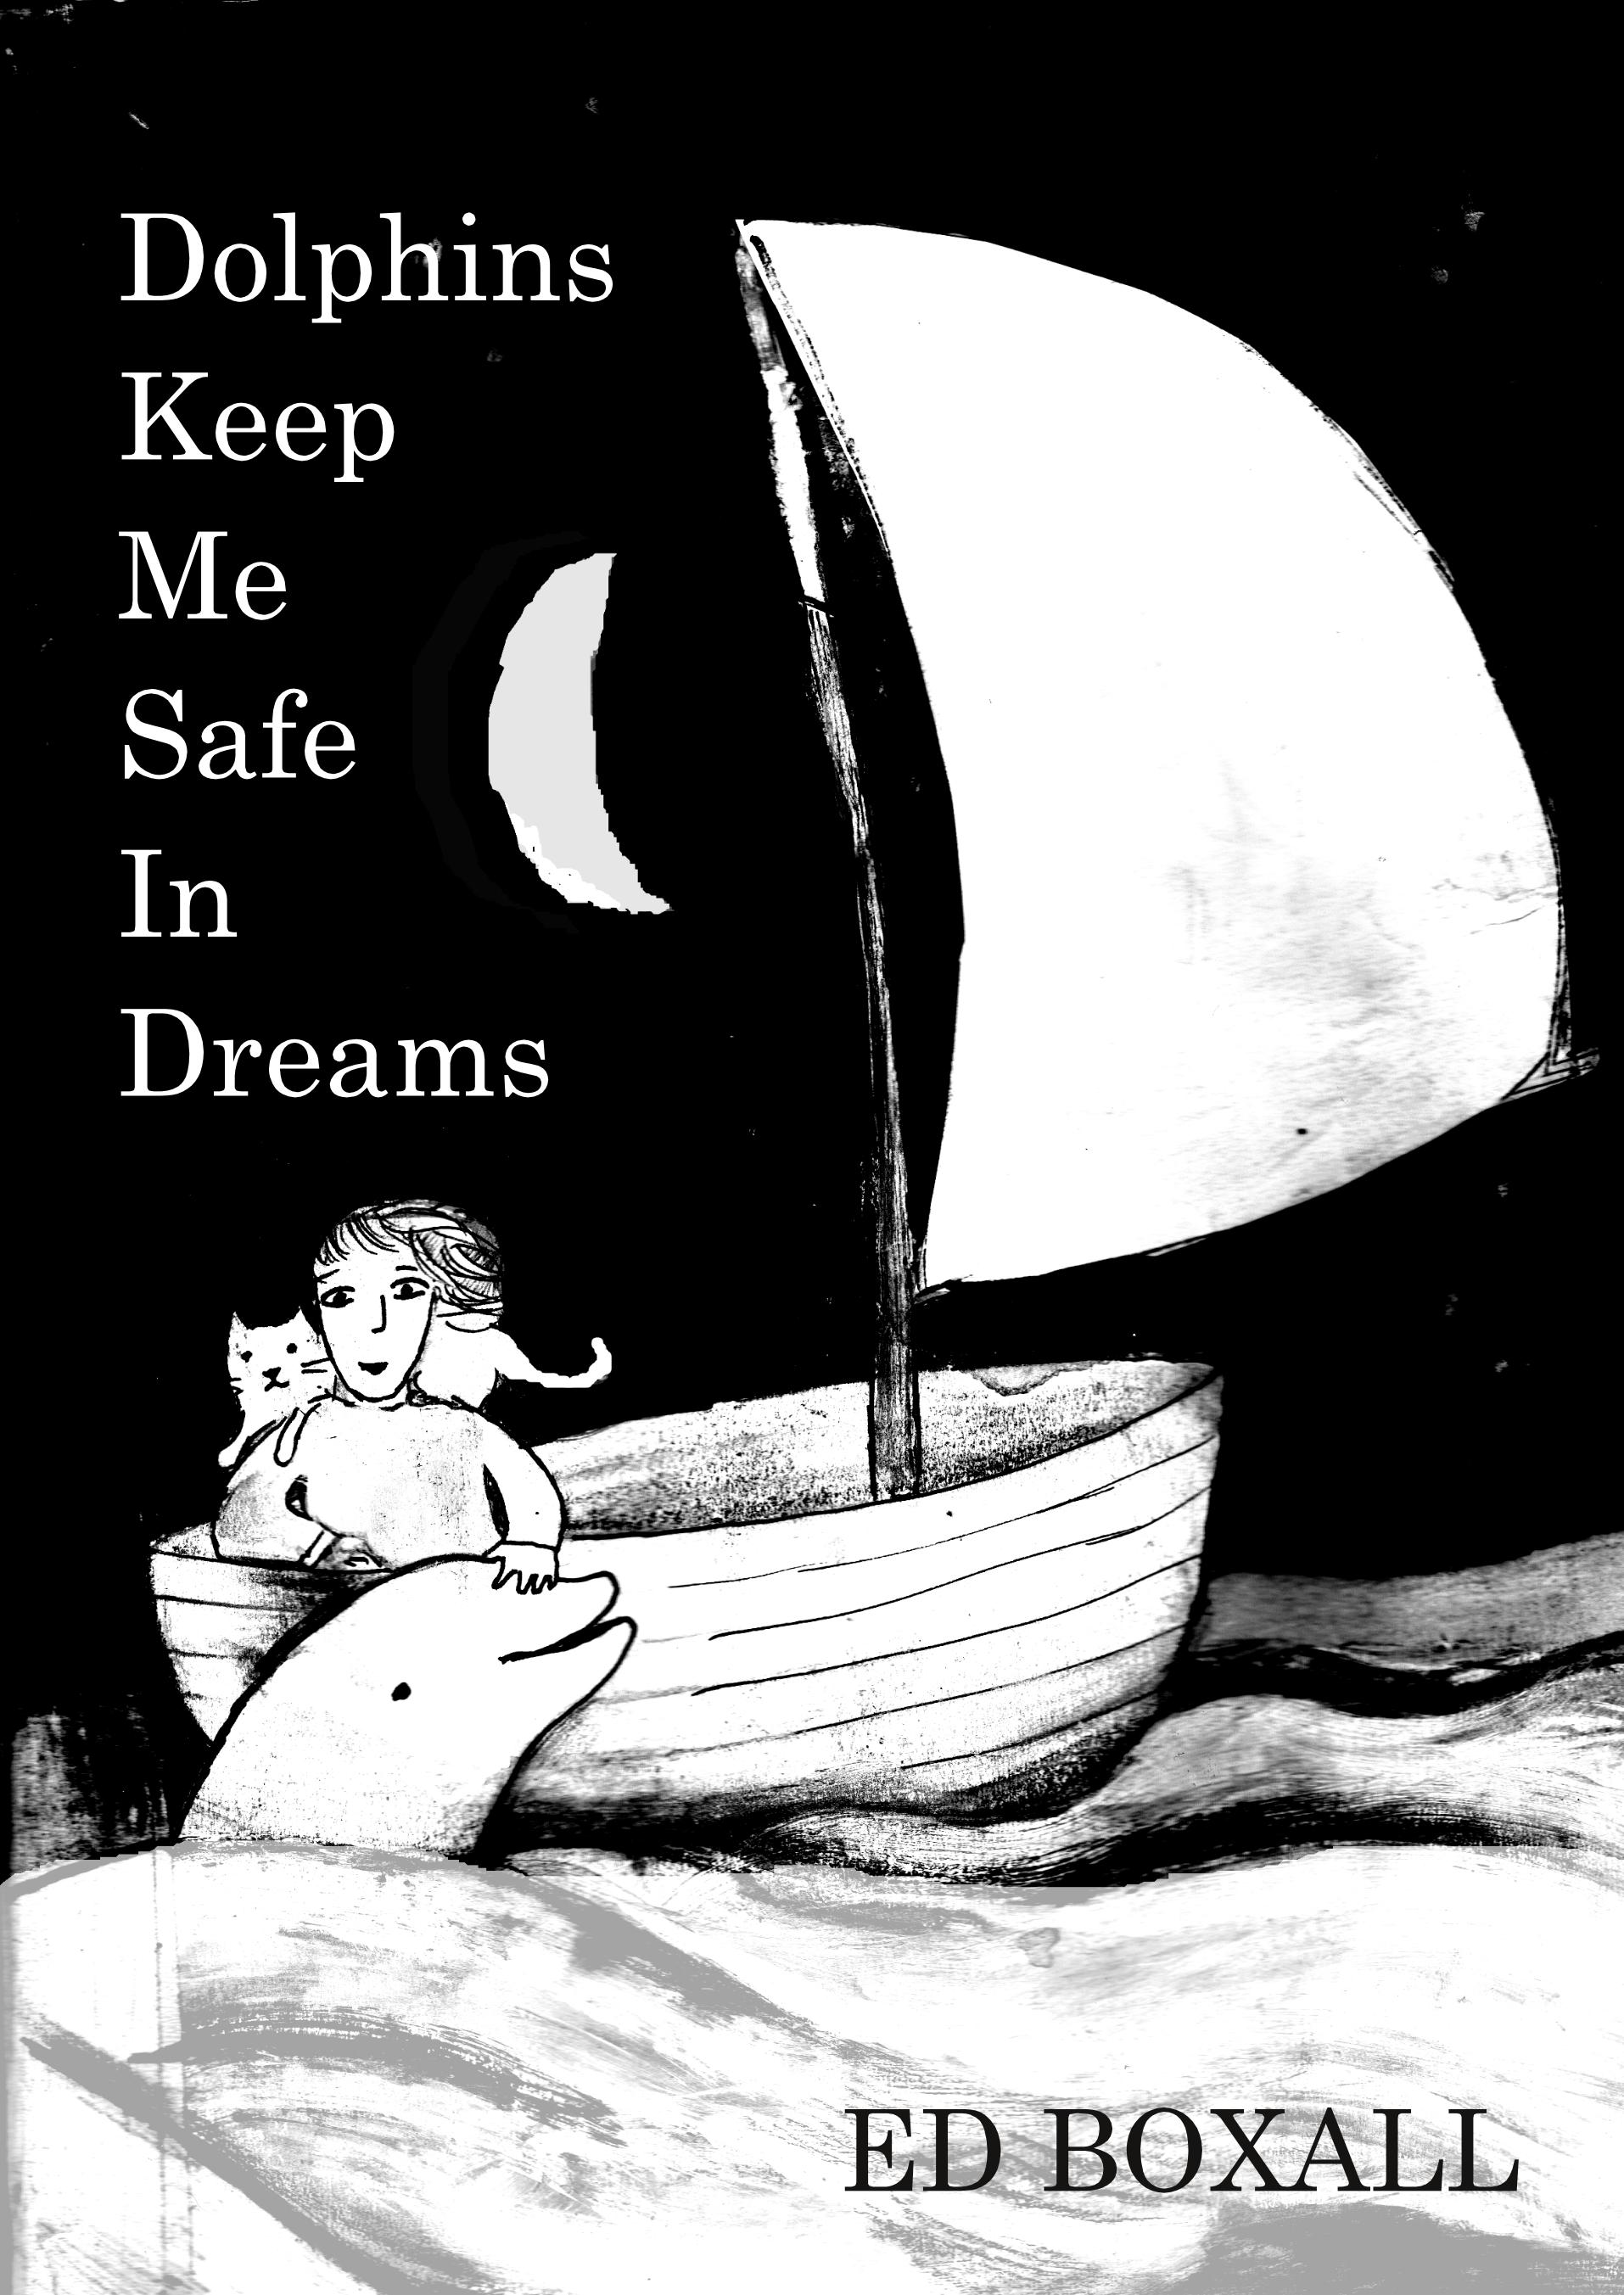 Dolphins Keep Me Safe in Dreams